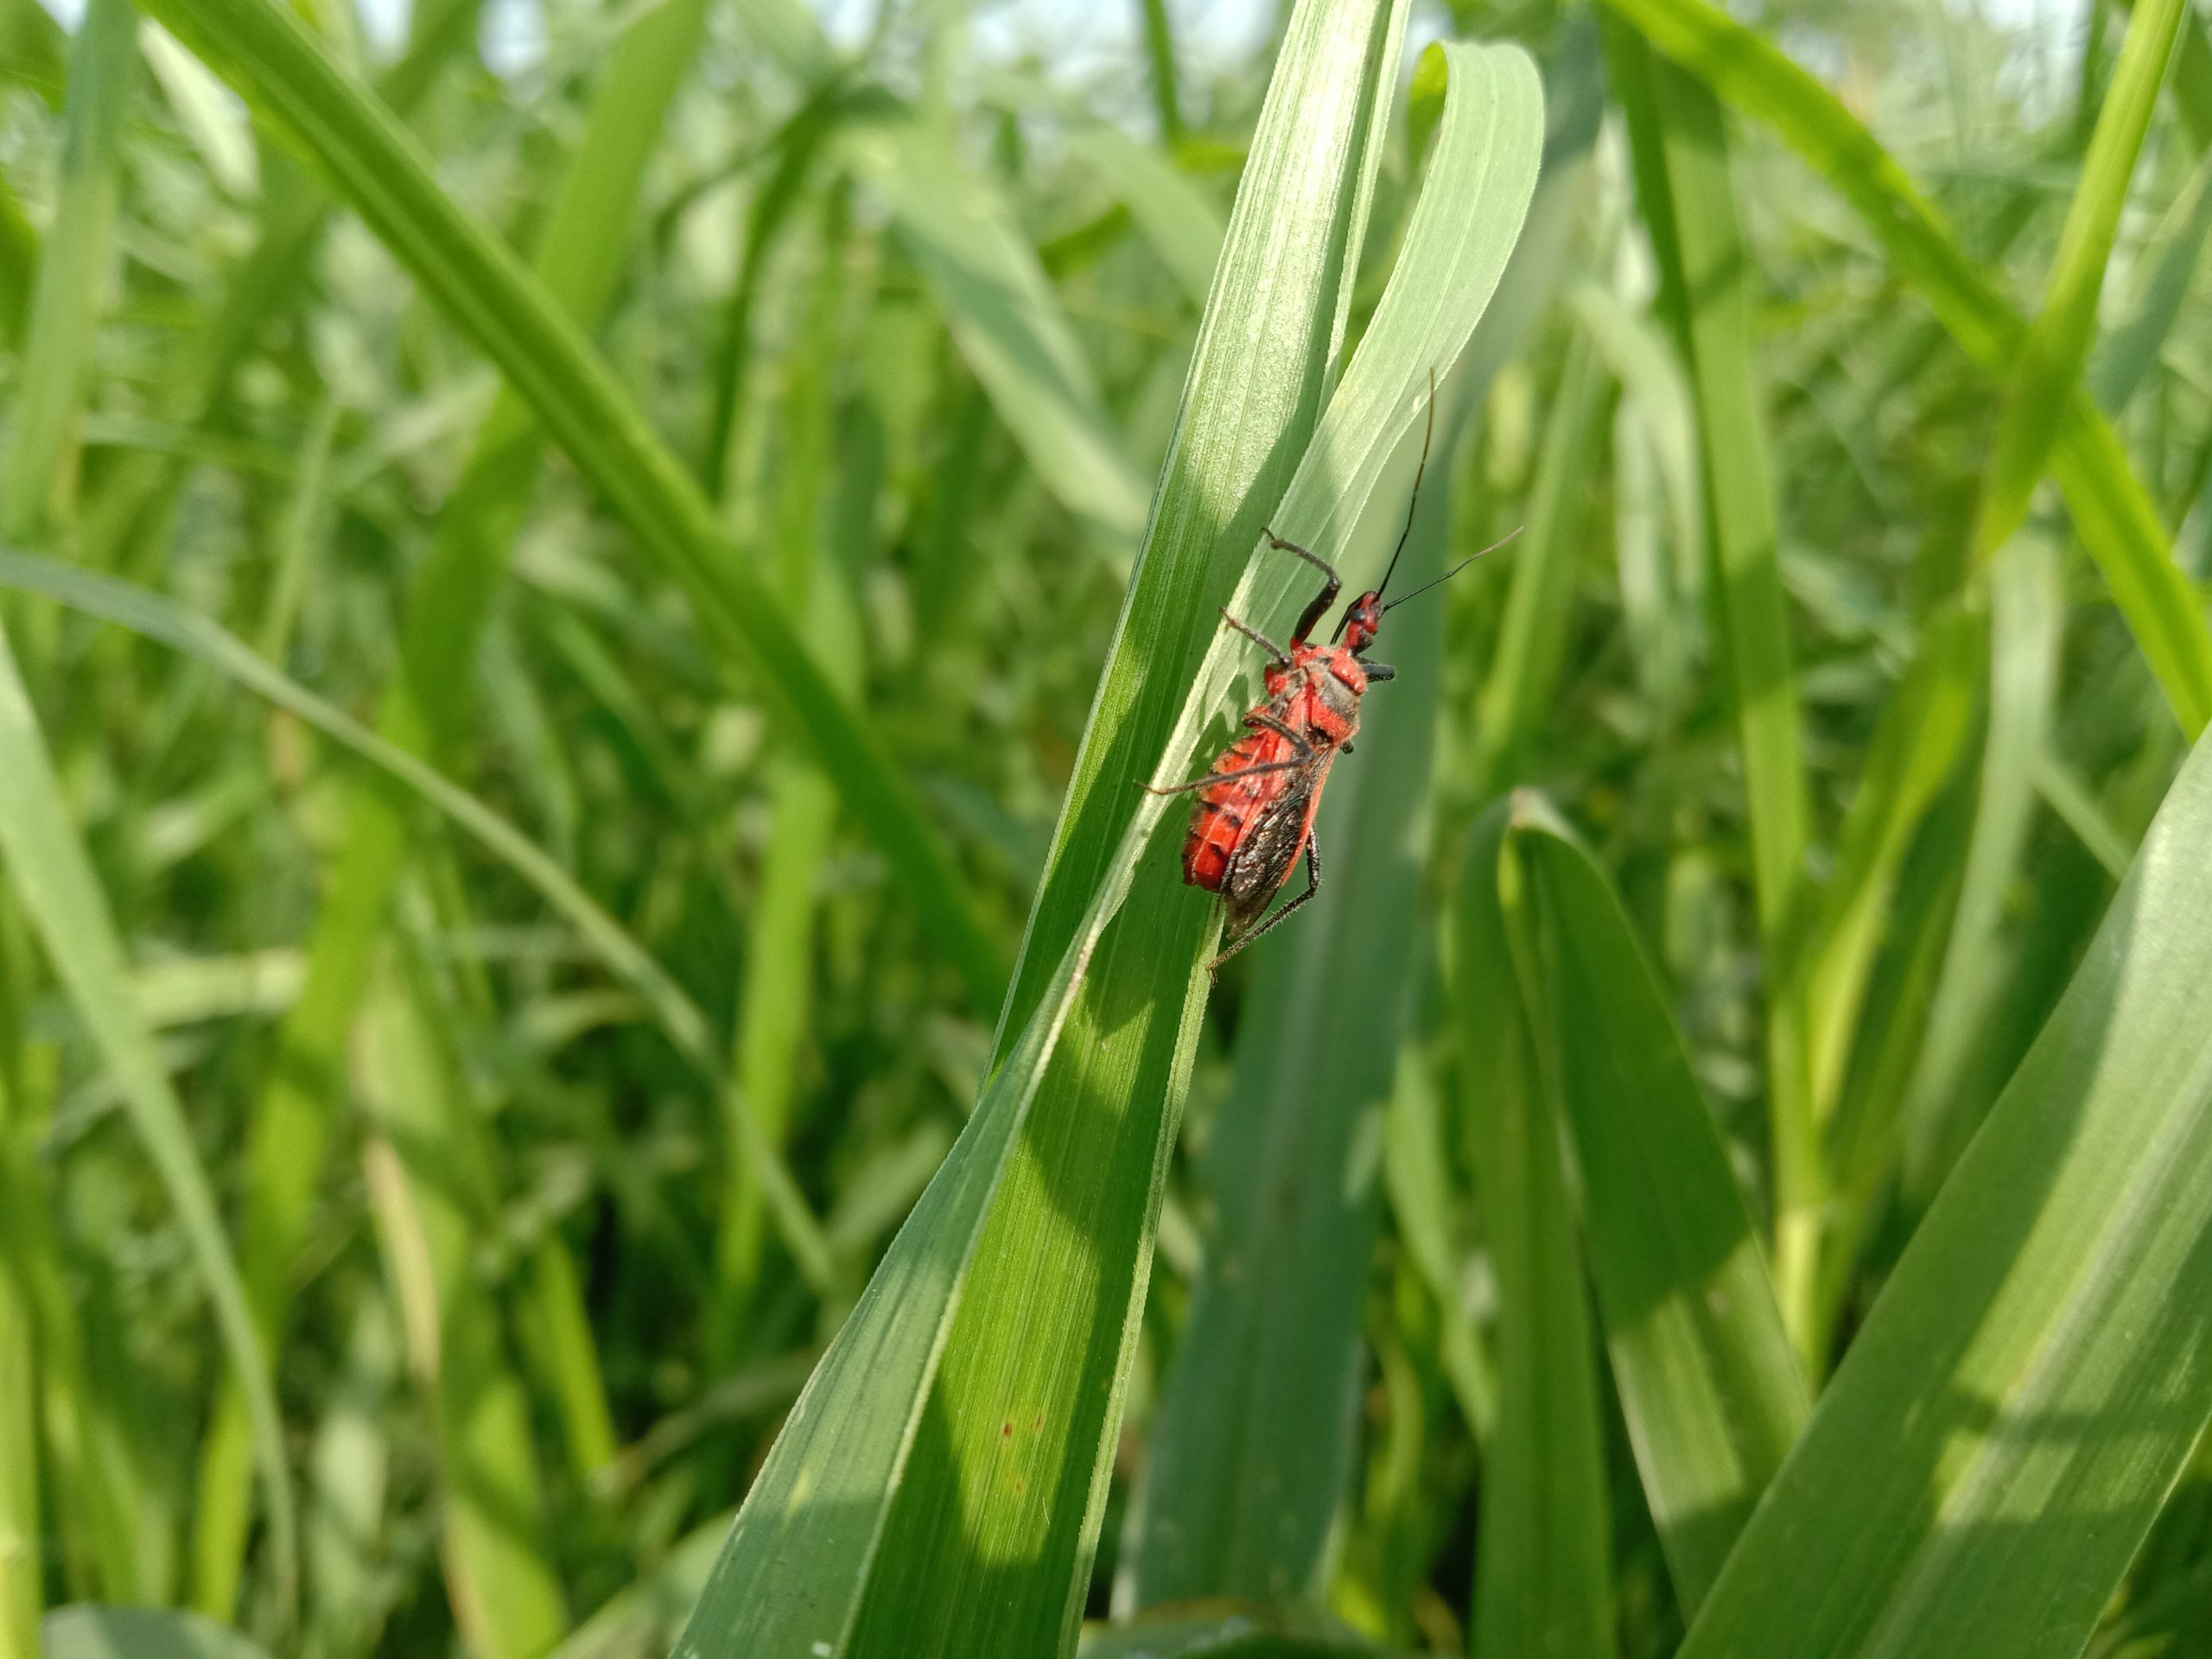 An insect on grass leaf